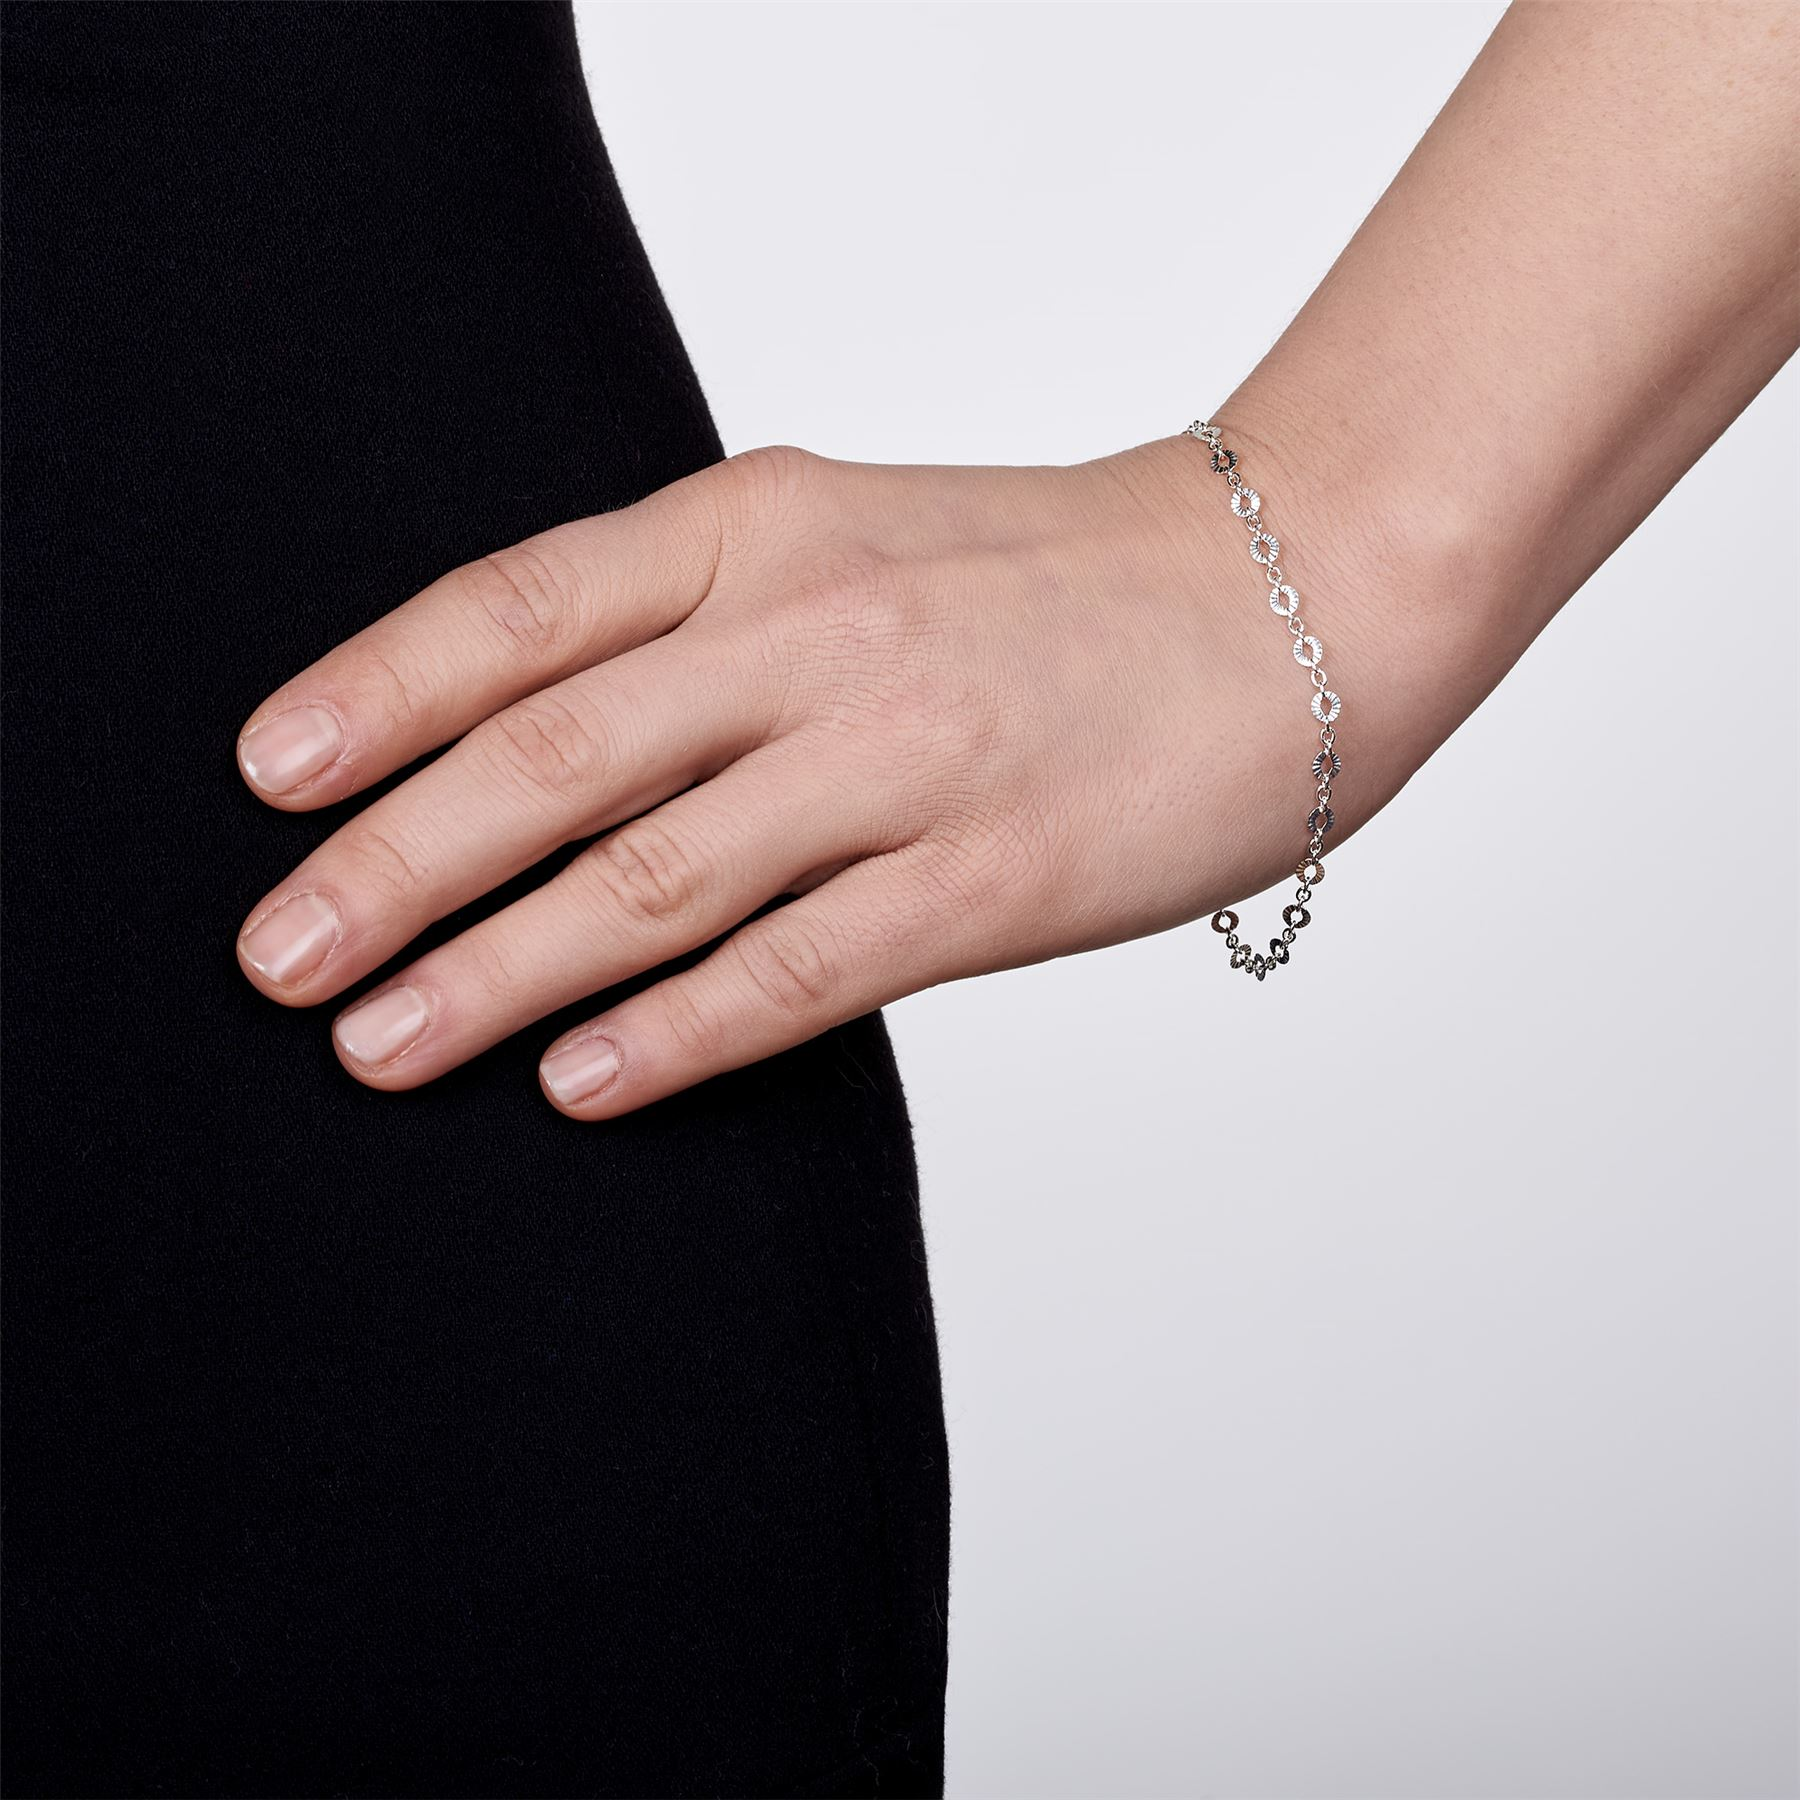 Amberta-Jewelry-Genuine-925-Sterling-Silver-Bracelet-Bangle-Chain-Made-in-Italy thumbnail 25